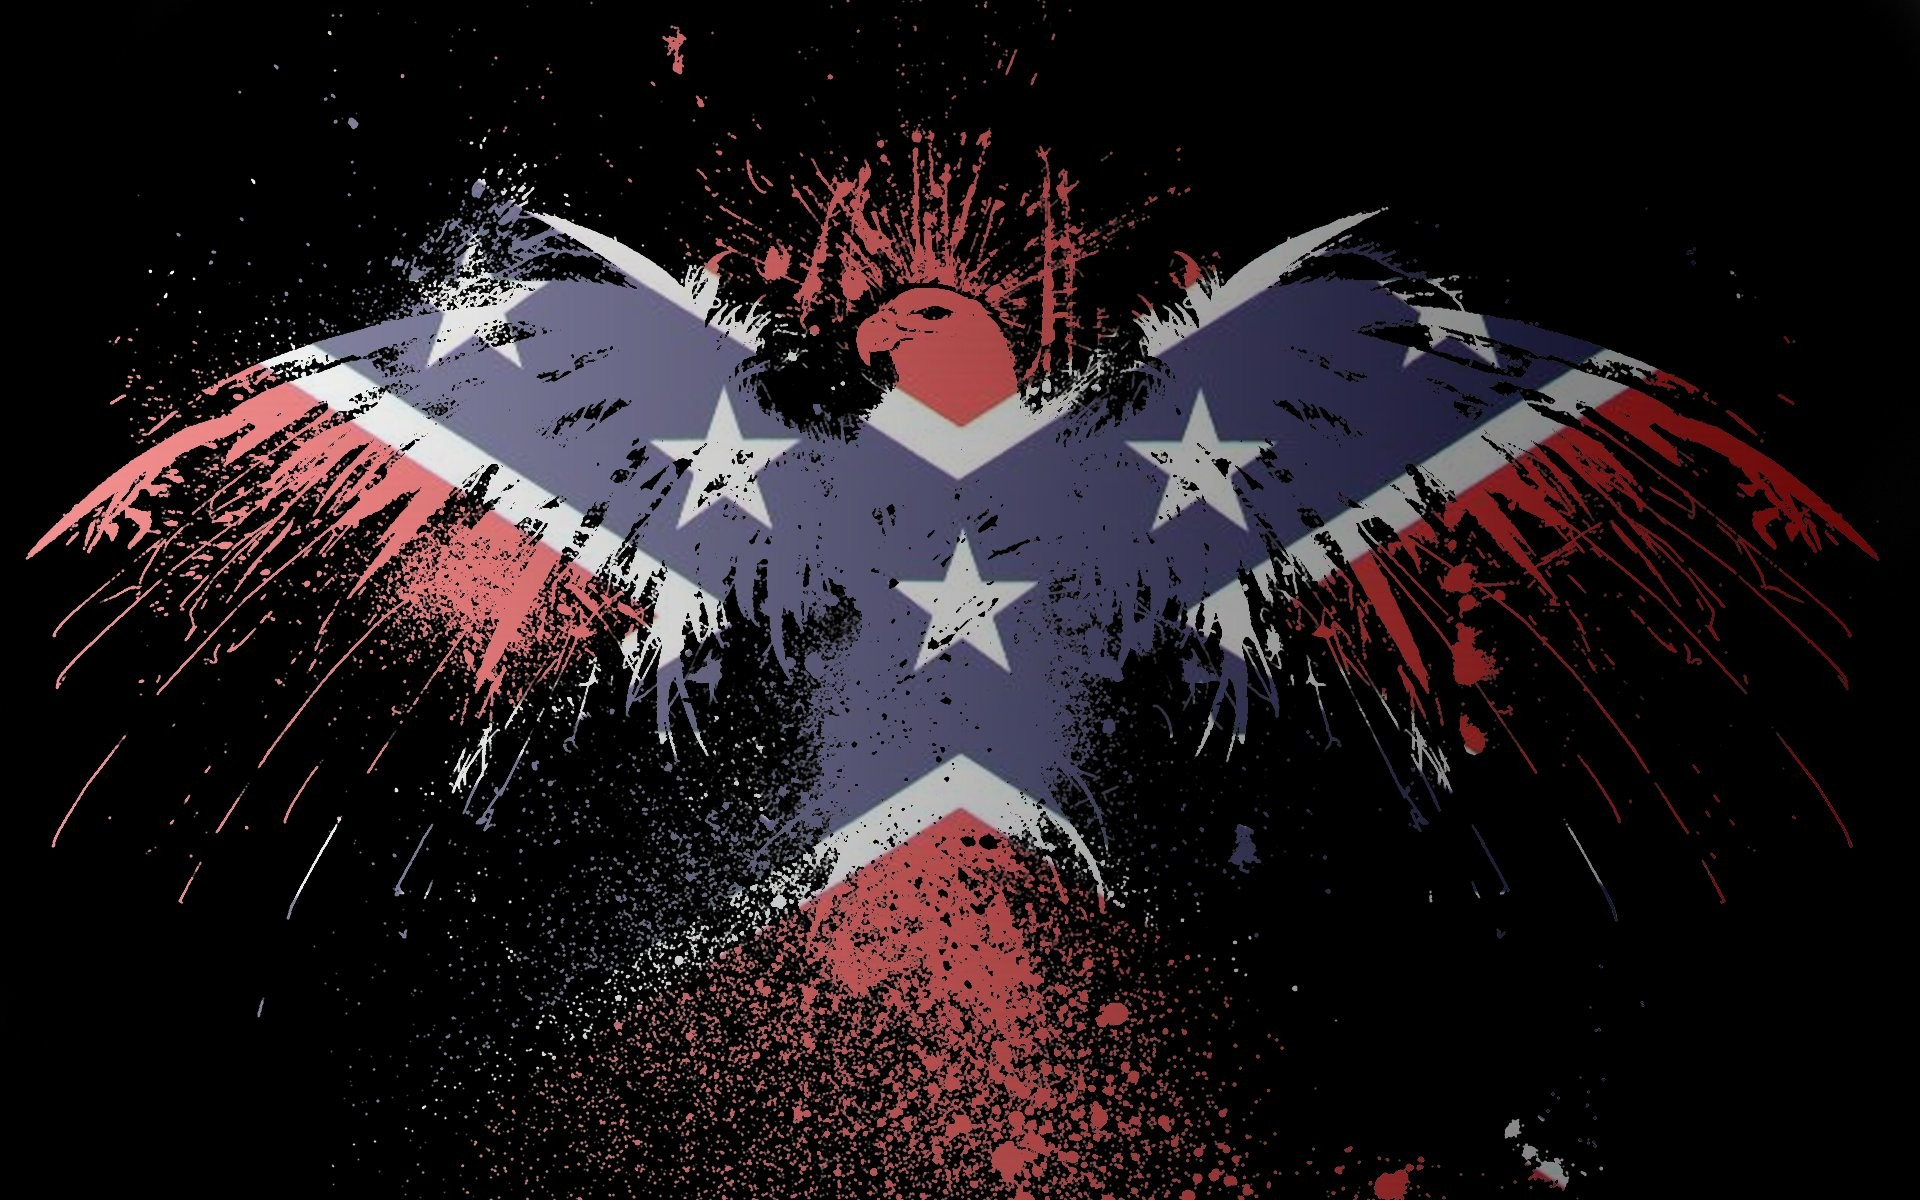 1920x1200 CONFEDERATE flag usa america united states csa civil war rebel dixie  military poster wallpaper |  | 742419 | WallpaperUP